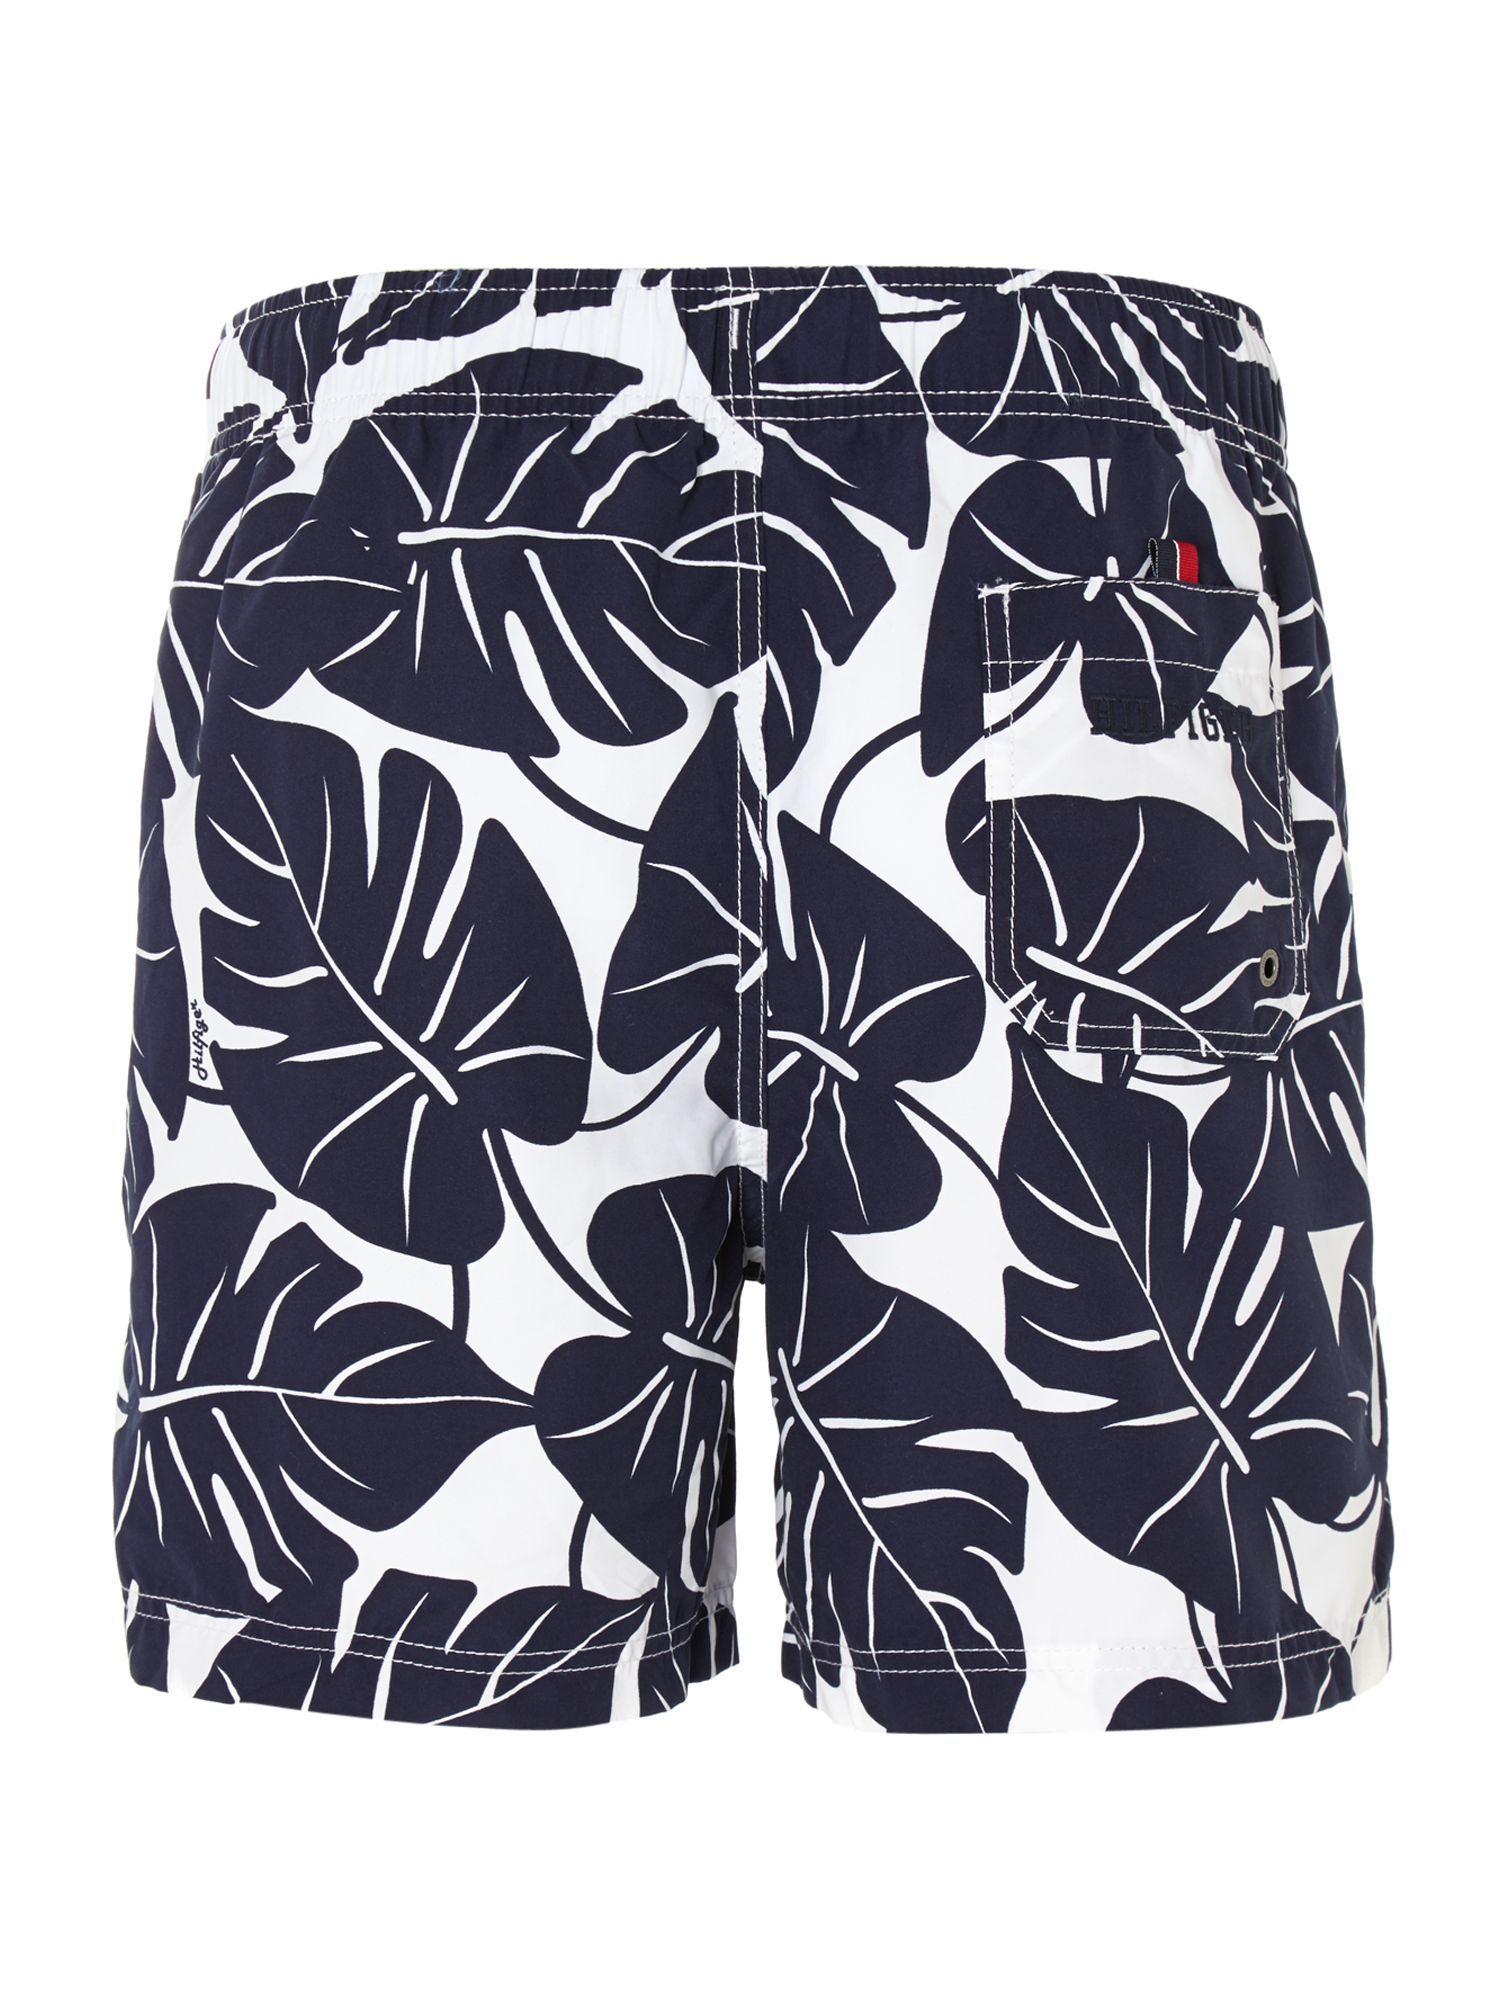 Scott leaves printed swim trunk